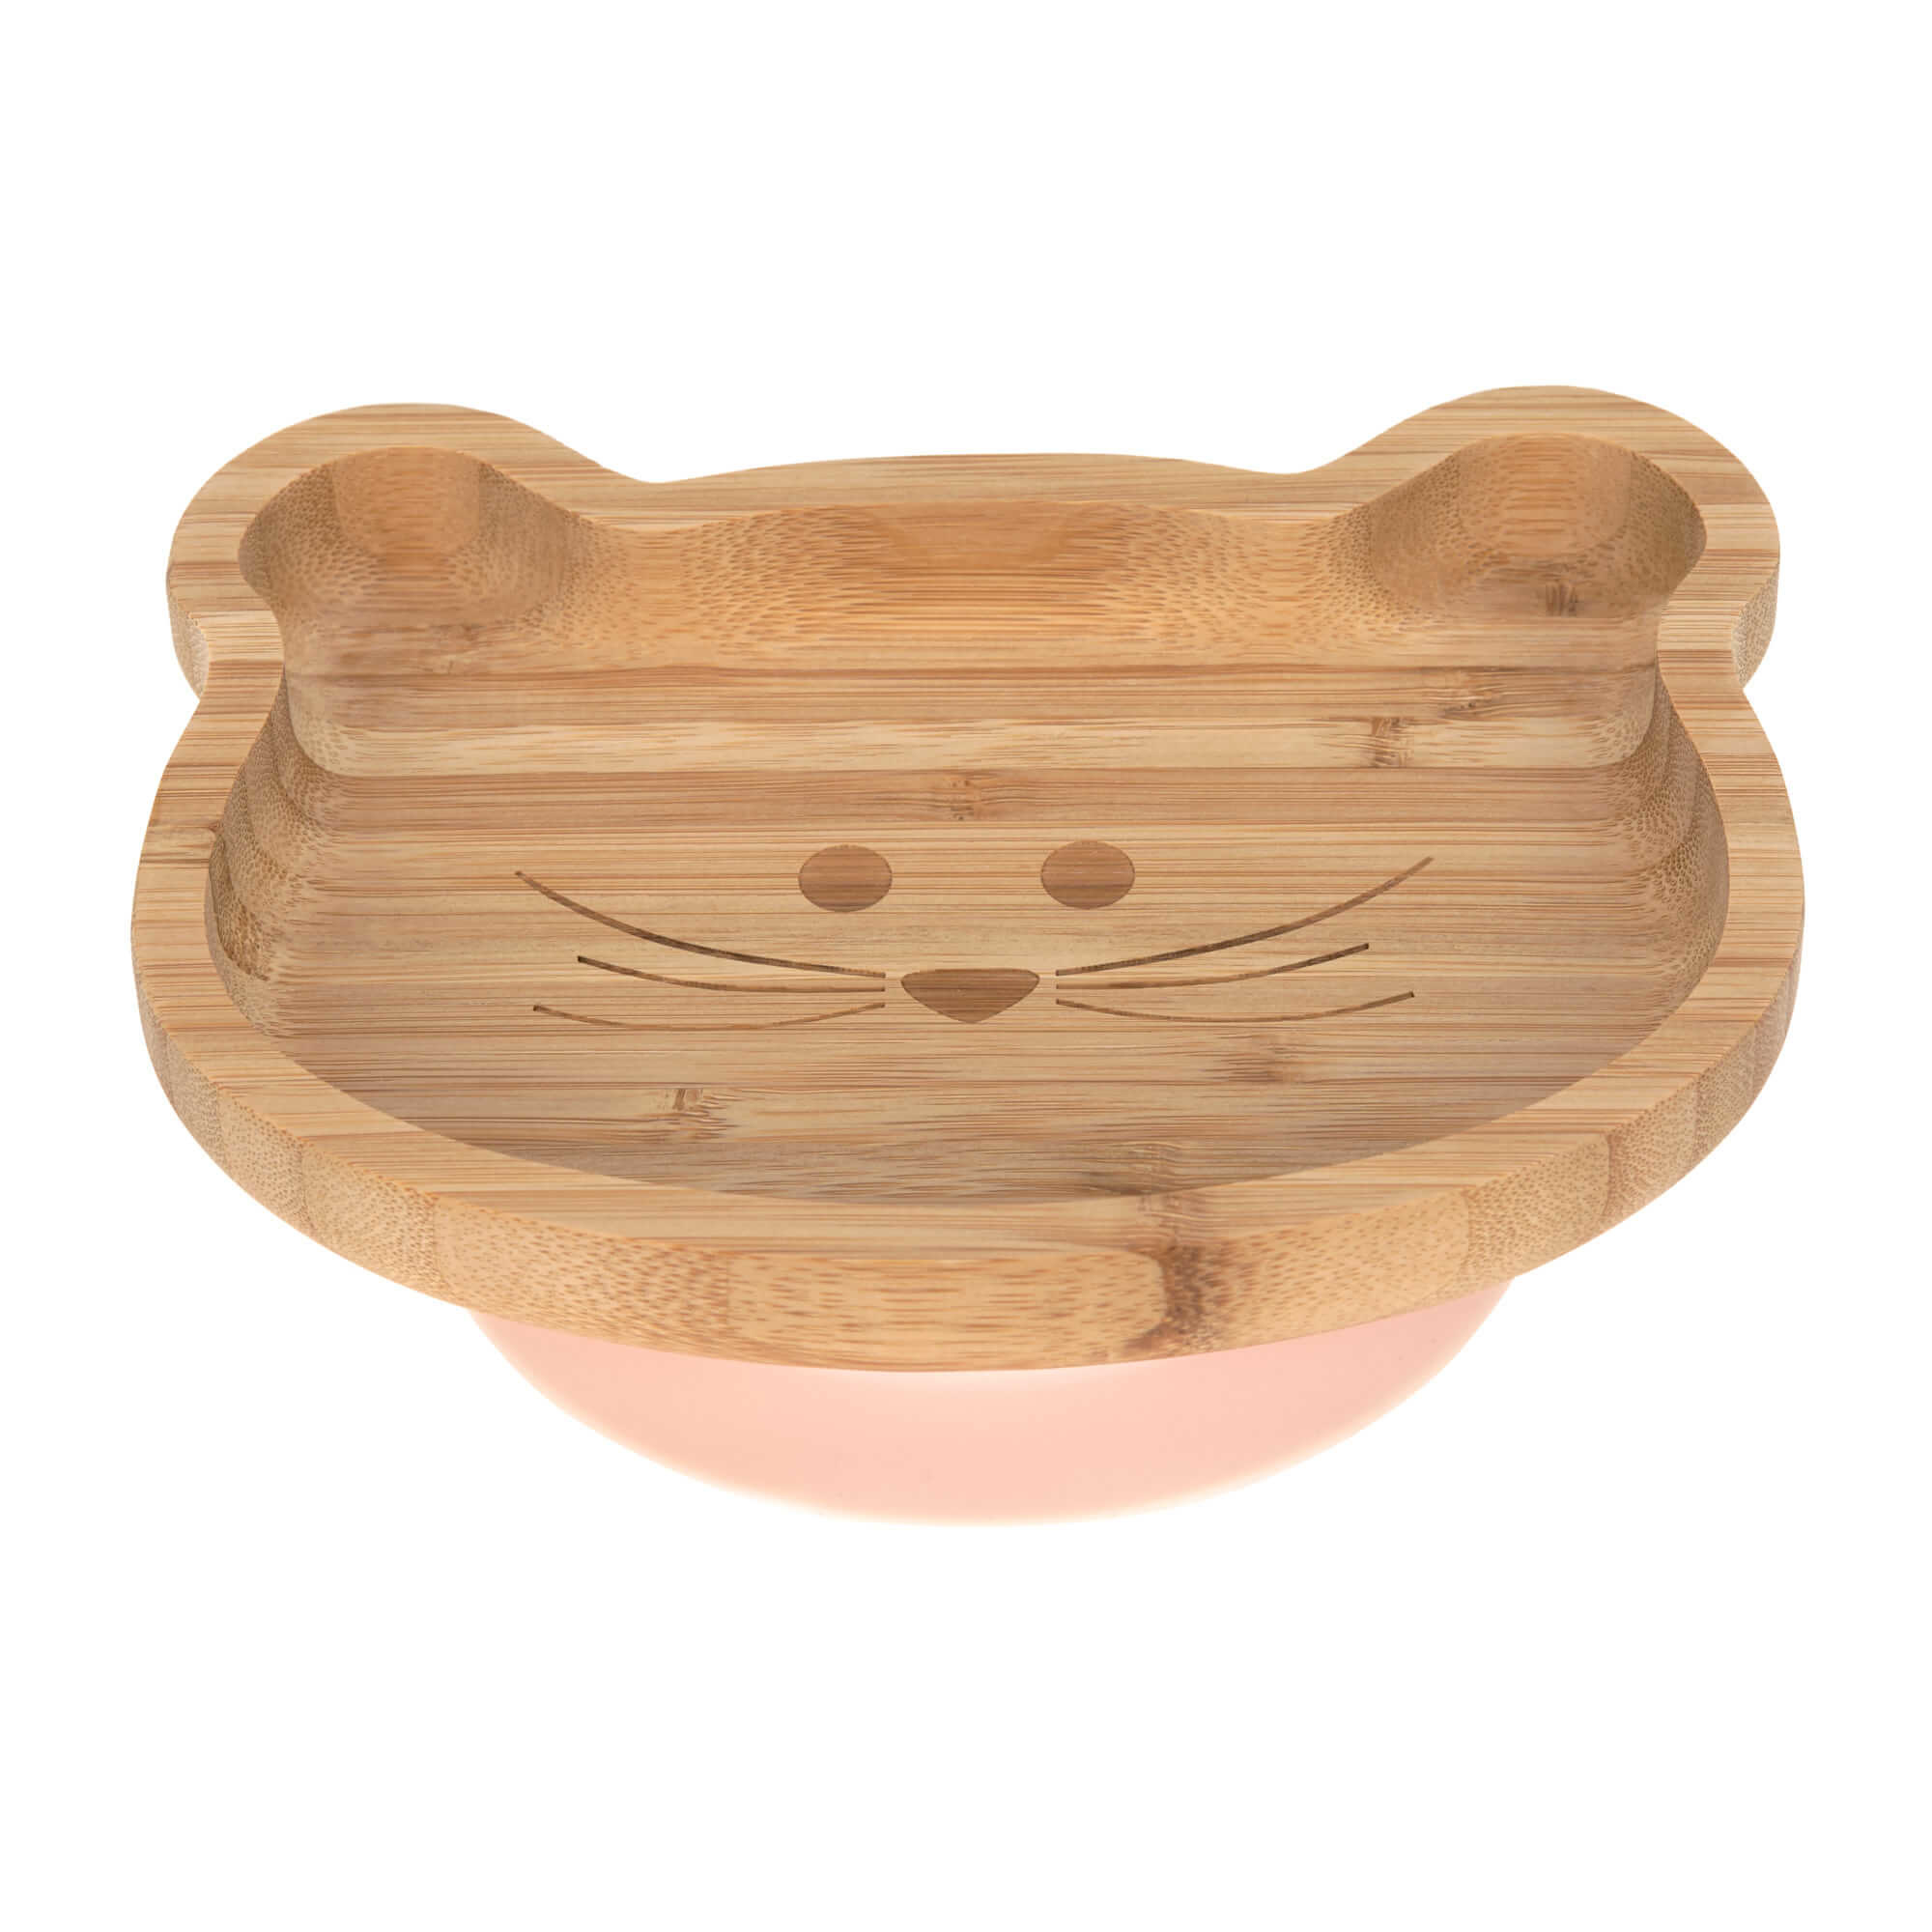 Lässig BAMB Lässig 4Babies & Kids Bord bamboo/hout met zuignap silicone little chums mouse